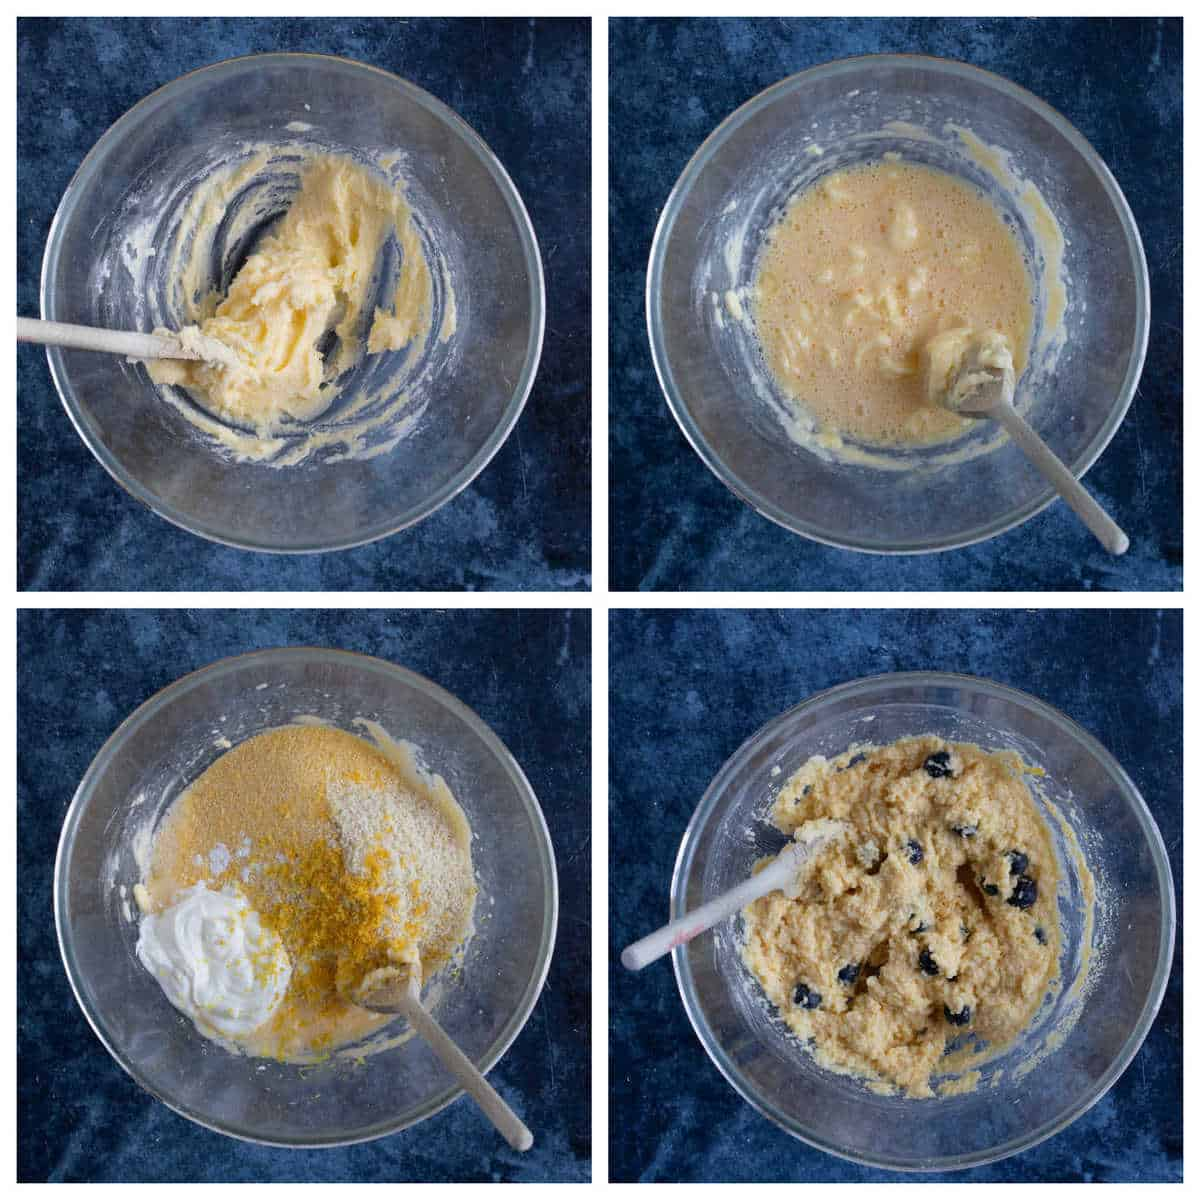 Step by step photo instructions for making the polenta loaf cake.